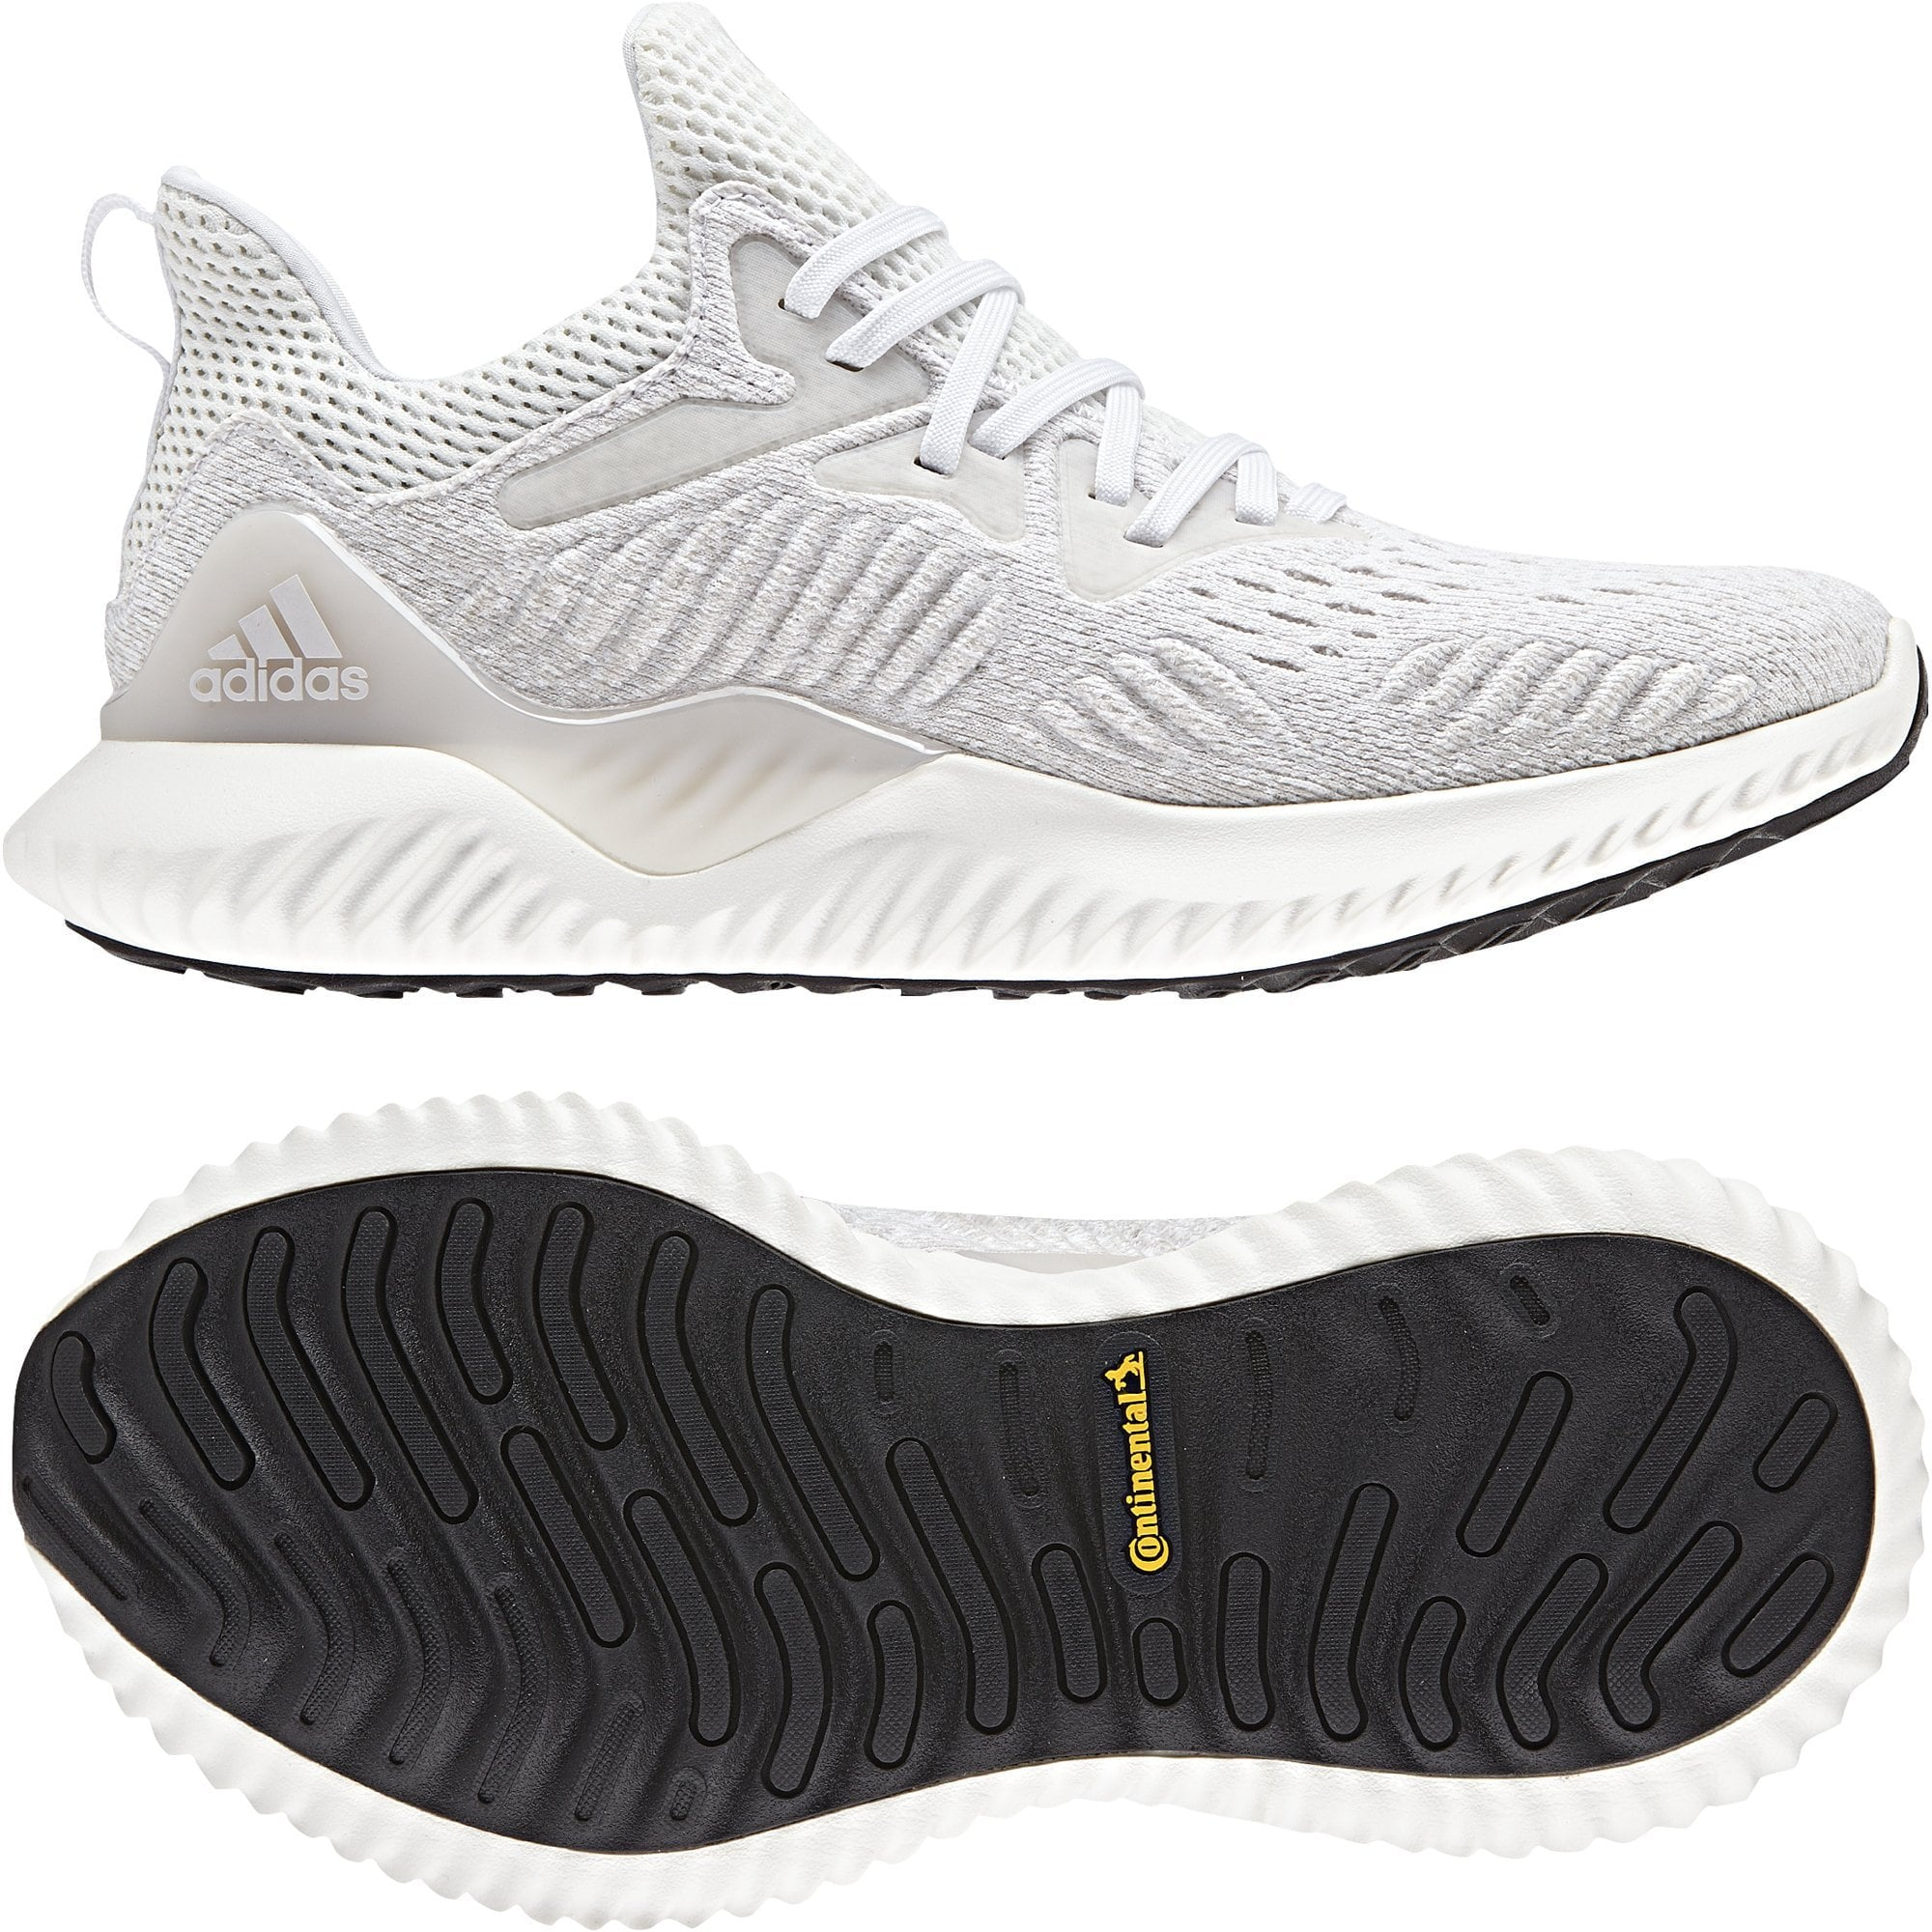 ADIDAS WOMEN'S RUNNING ALPHABOUNCE BEYOND WHITE/GREY SHOES - INSPORT